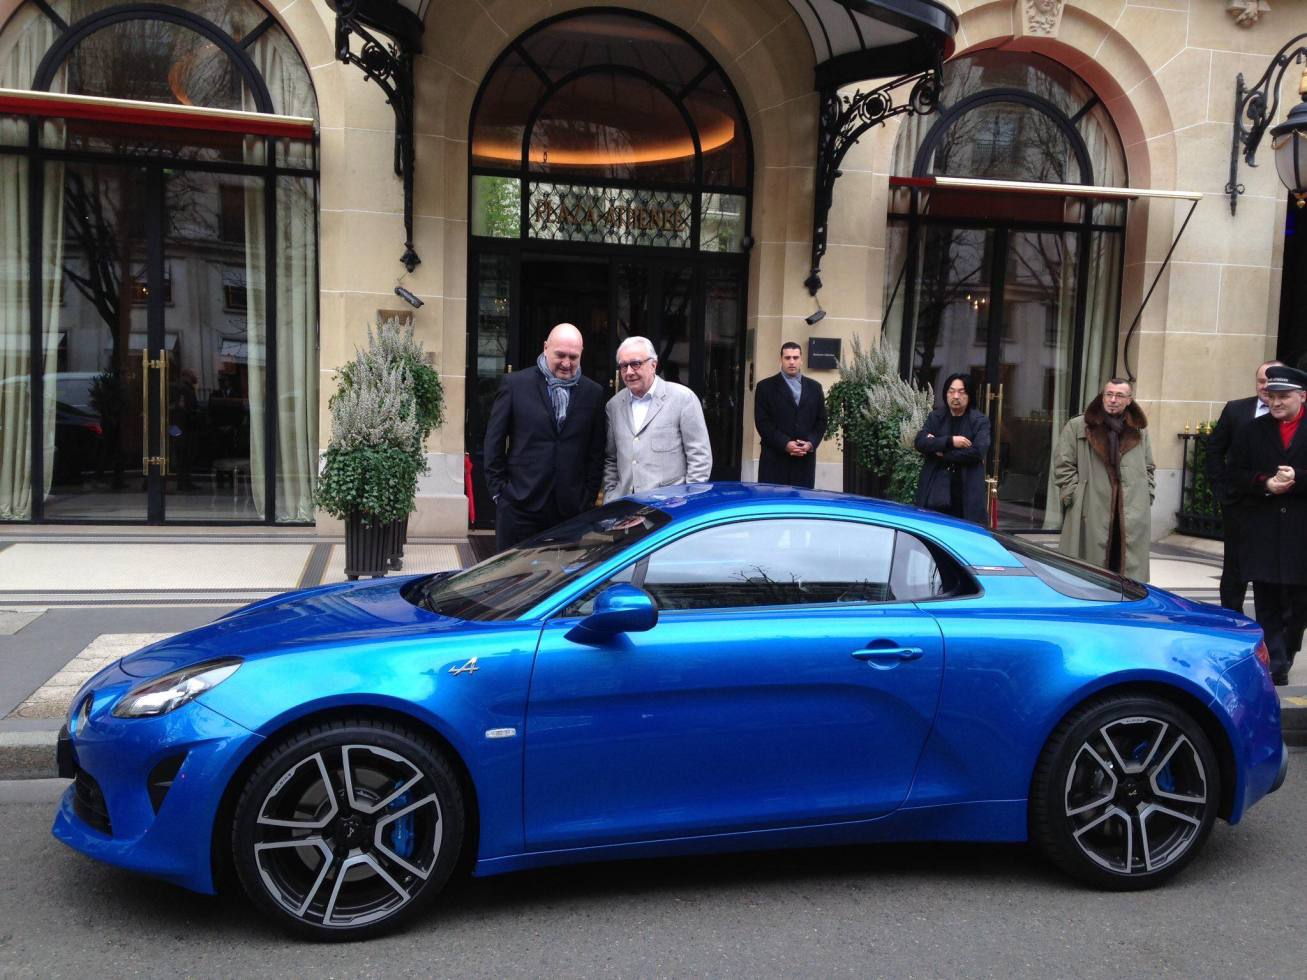 Alpine A110 Good France Paris Alain Ducasse - 8